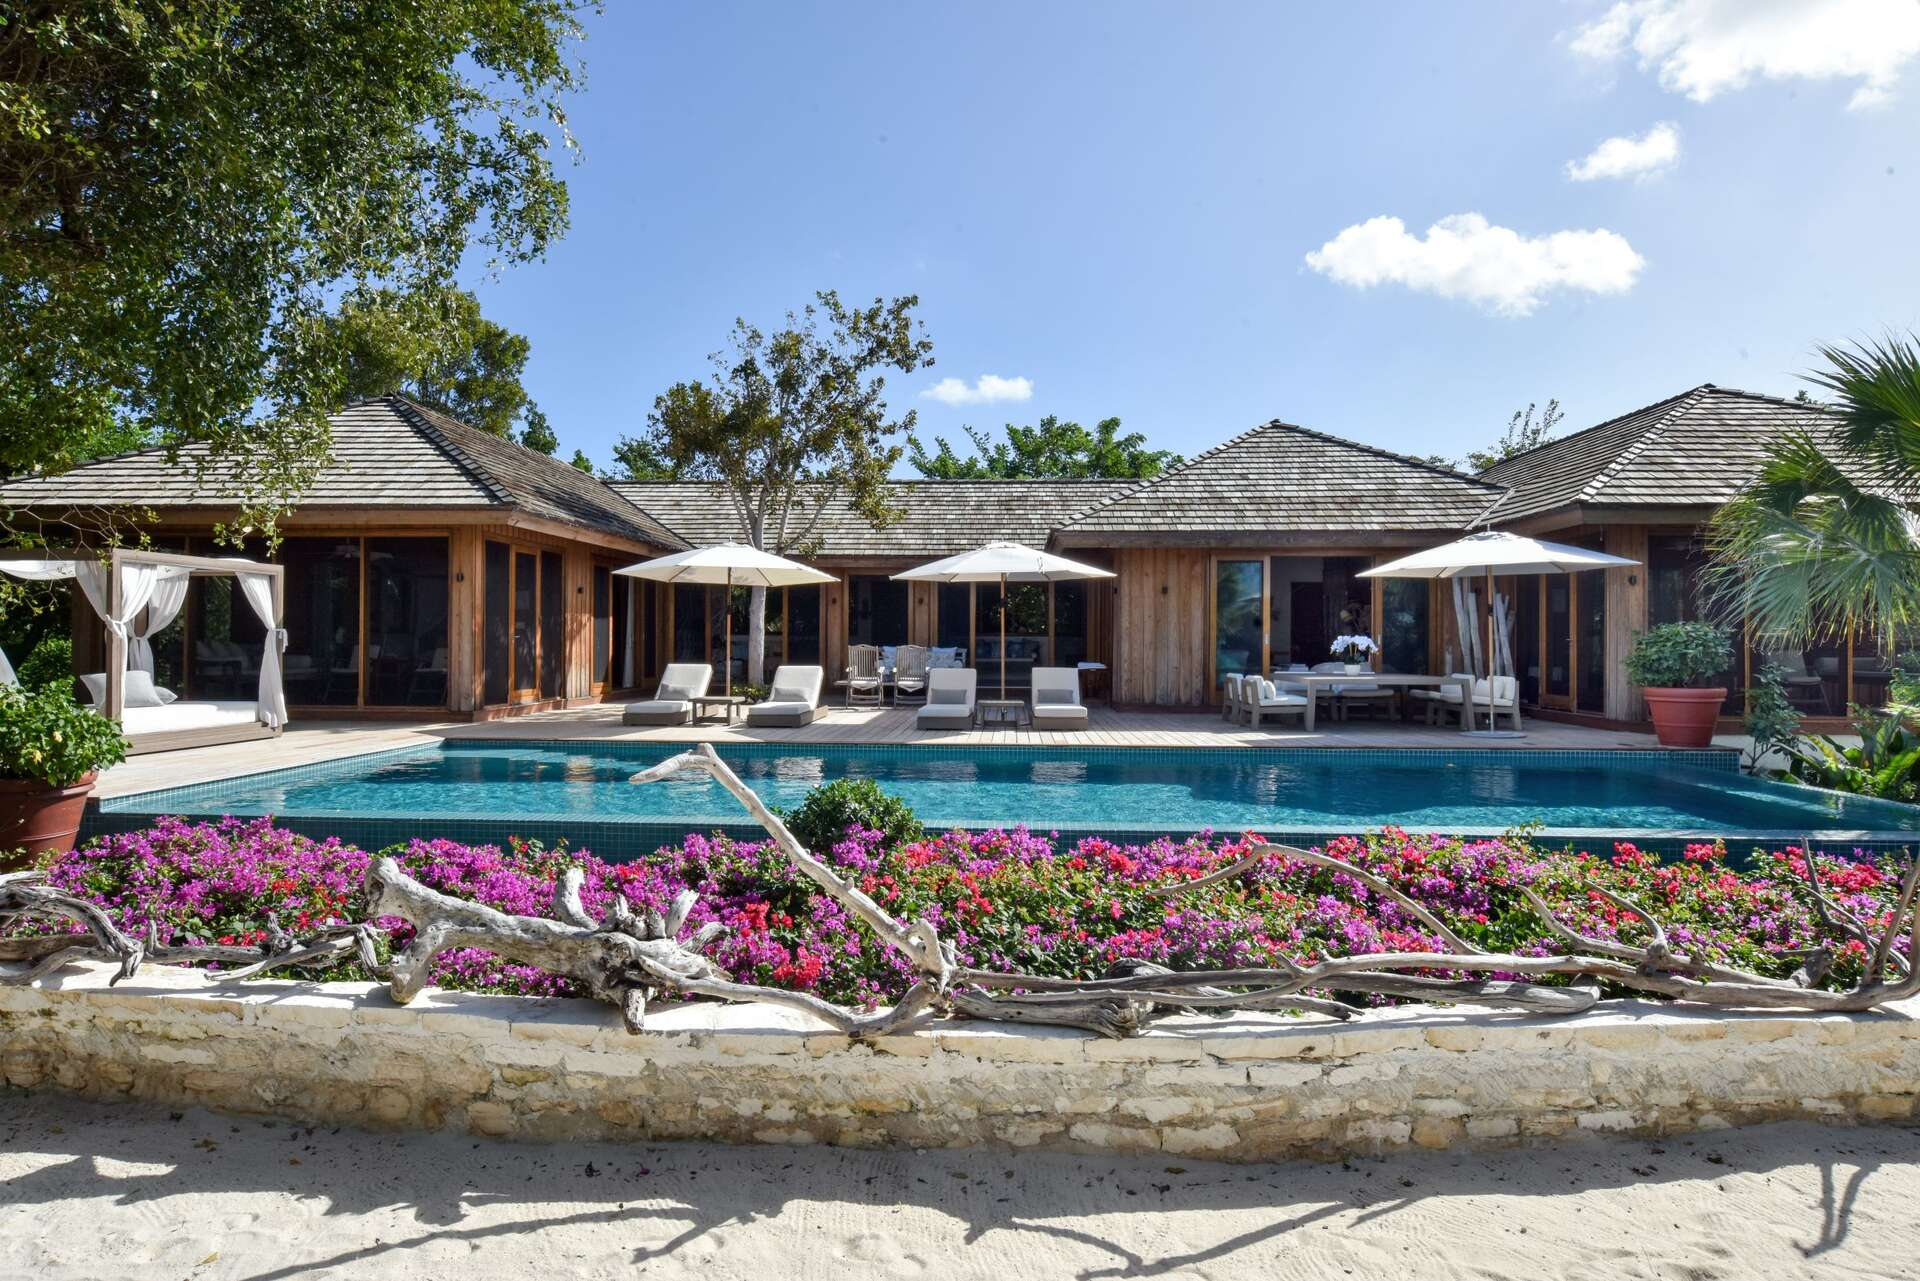 Luxury villa rentals caribbean - Turks and caicos - Parrot cay - Como parrot cay - Lucky House - Image 1/9